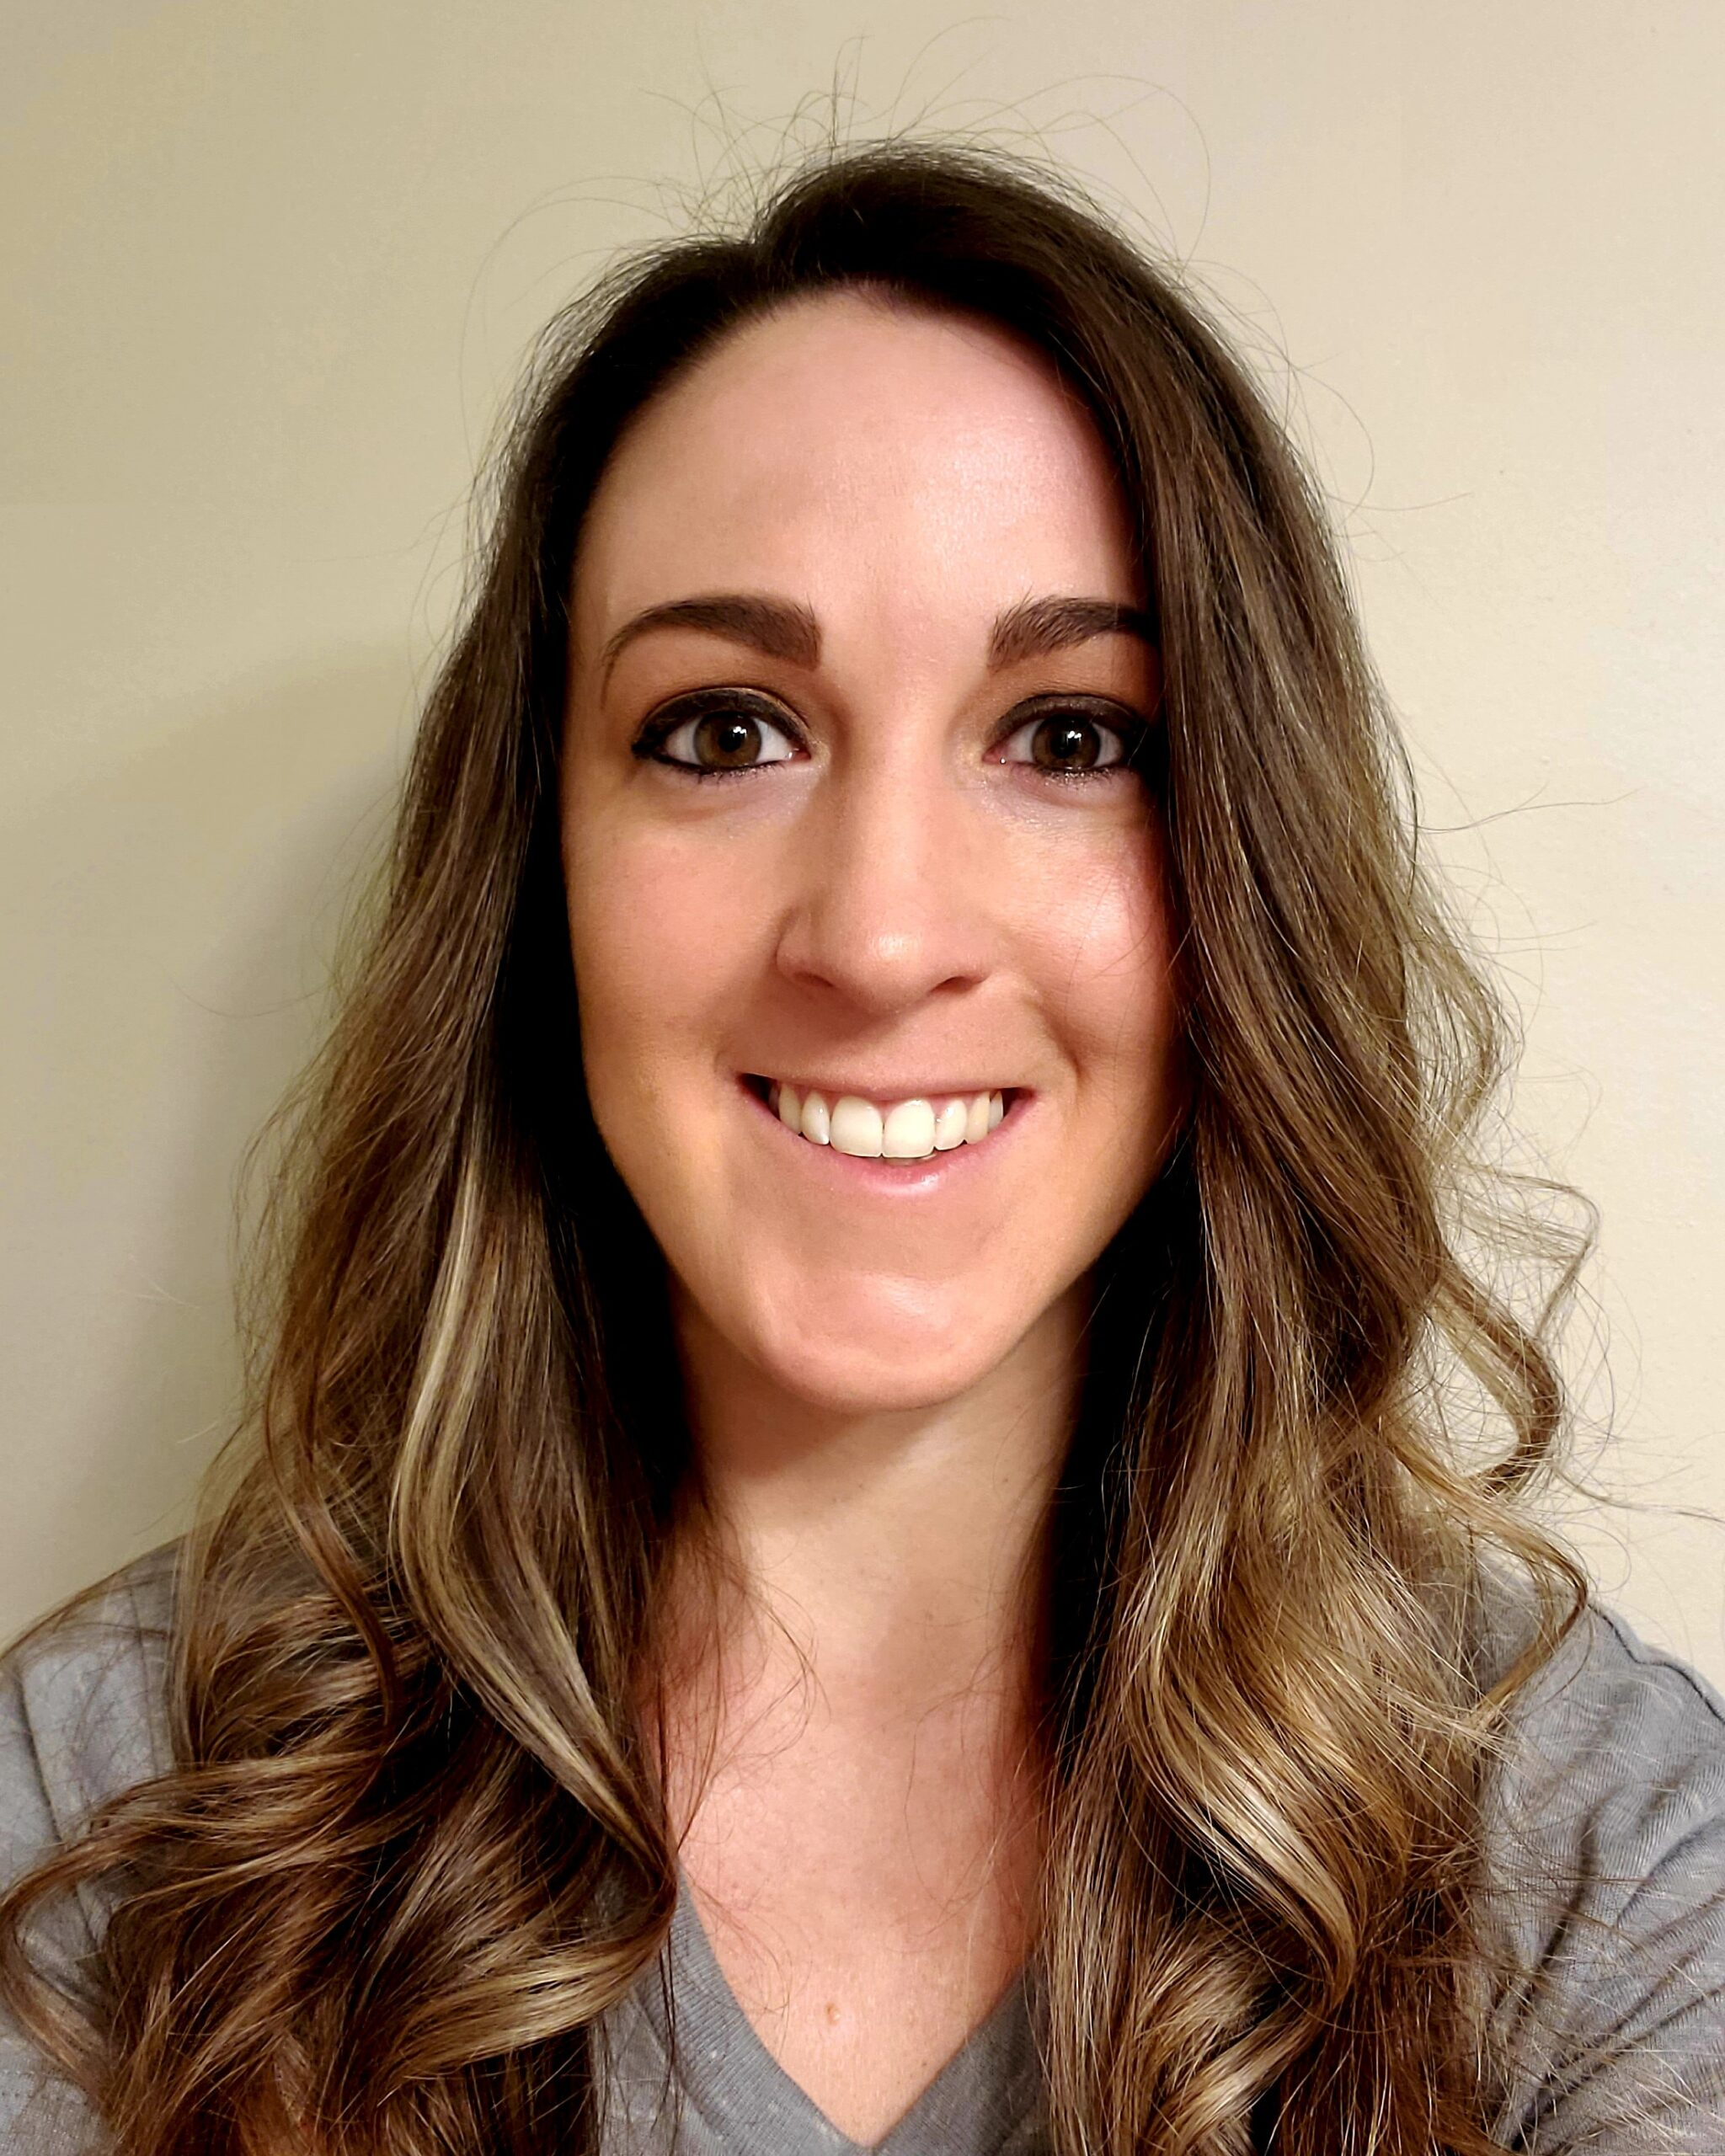 Kelly Maher: Holistic Cannabis Practitioner at Flowered Wellness in Orchard Park, NY